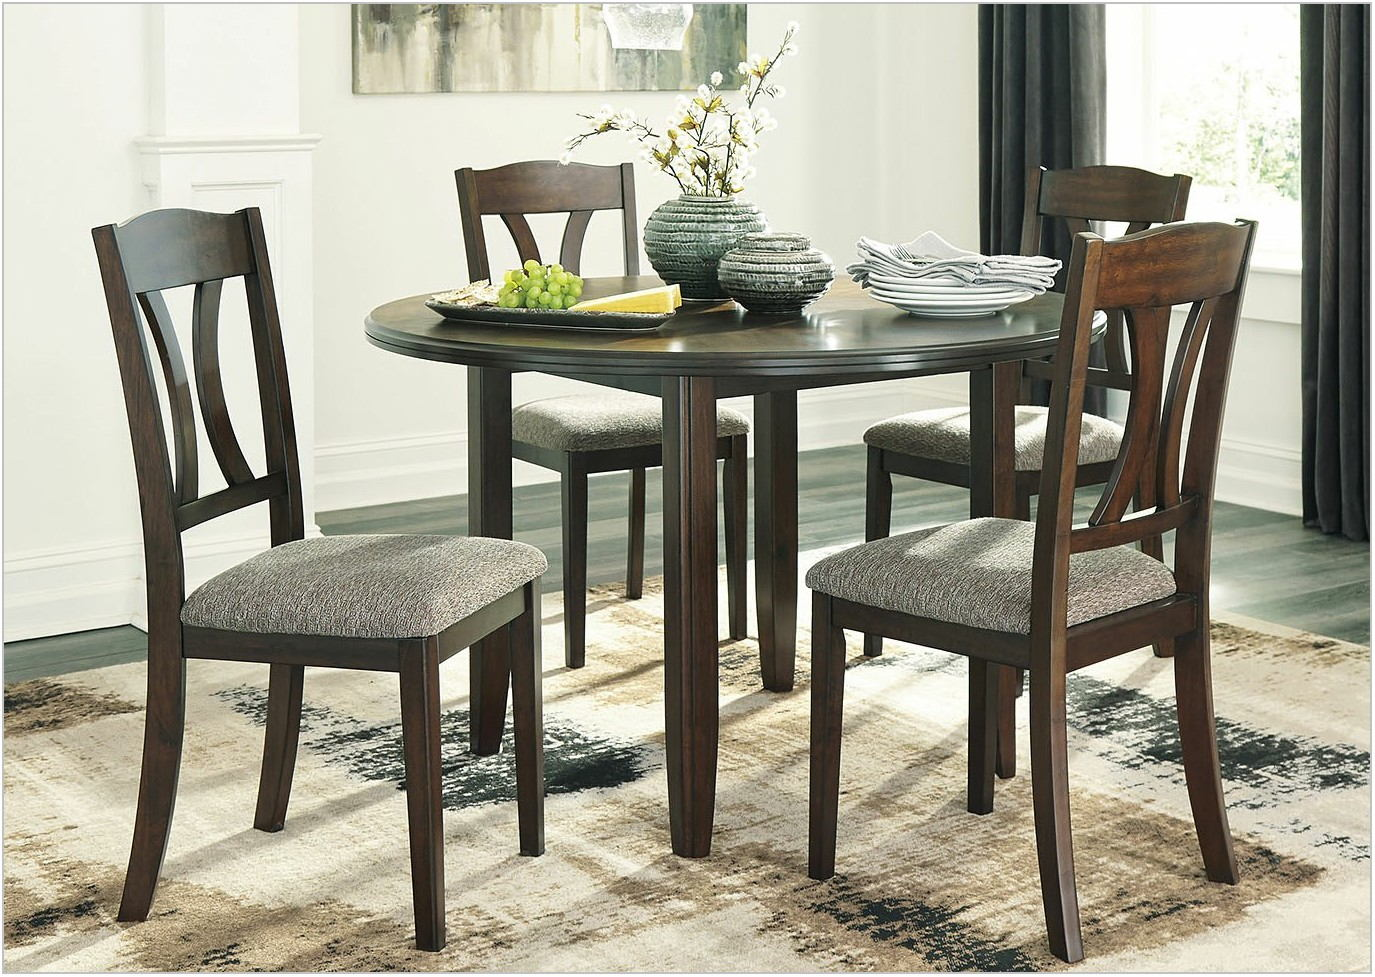 Dining Room Table And Chairs Ashley Furniture